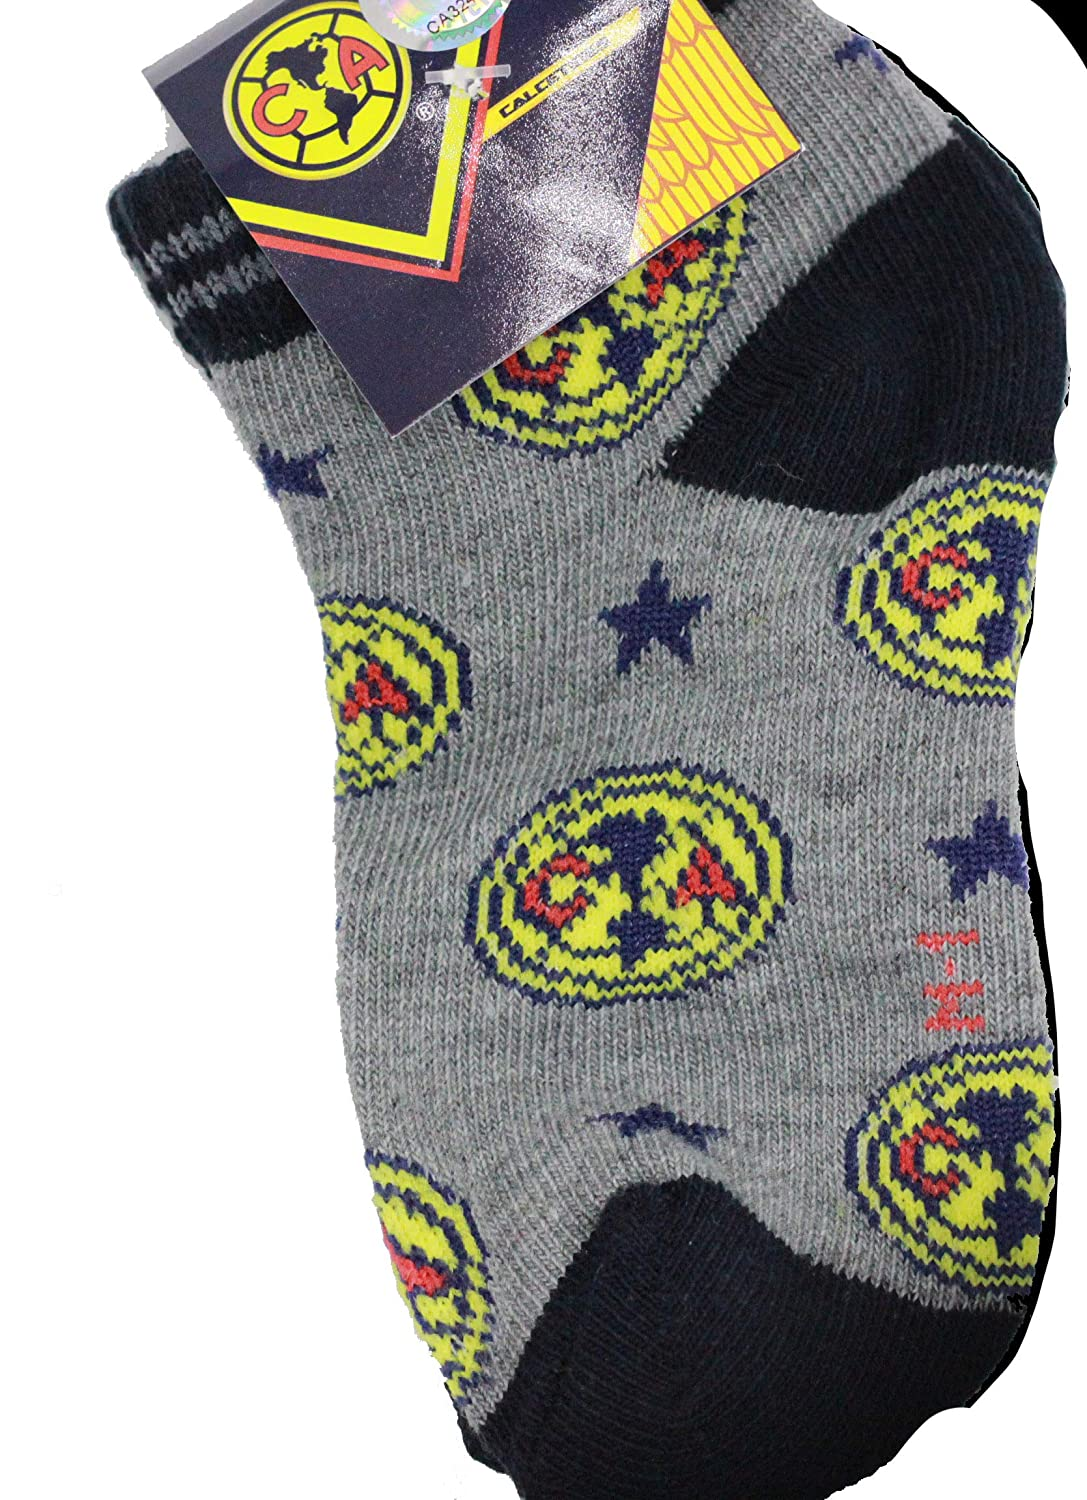 Amazon.com : Aguilas del America Soccer Mexico Baby Socks 12 to 24 months - Calceta Aguilas del America Baby : Everything Else